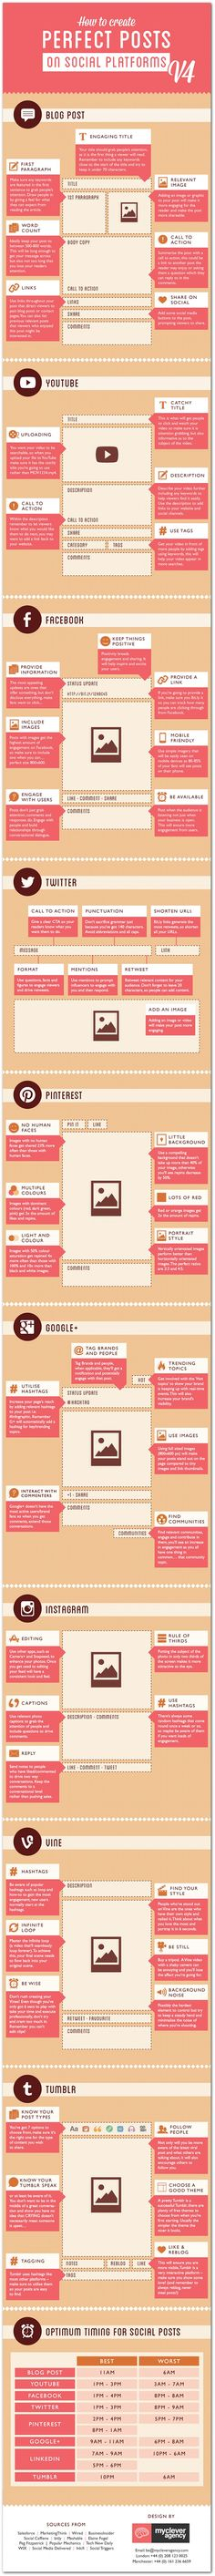 The perfect post on different #social networks